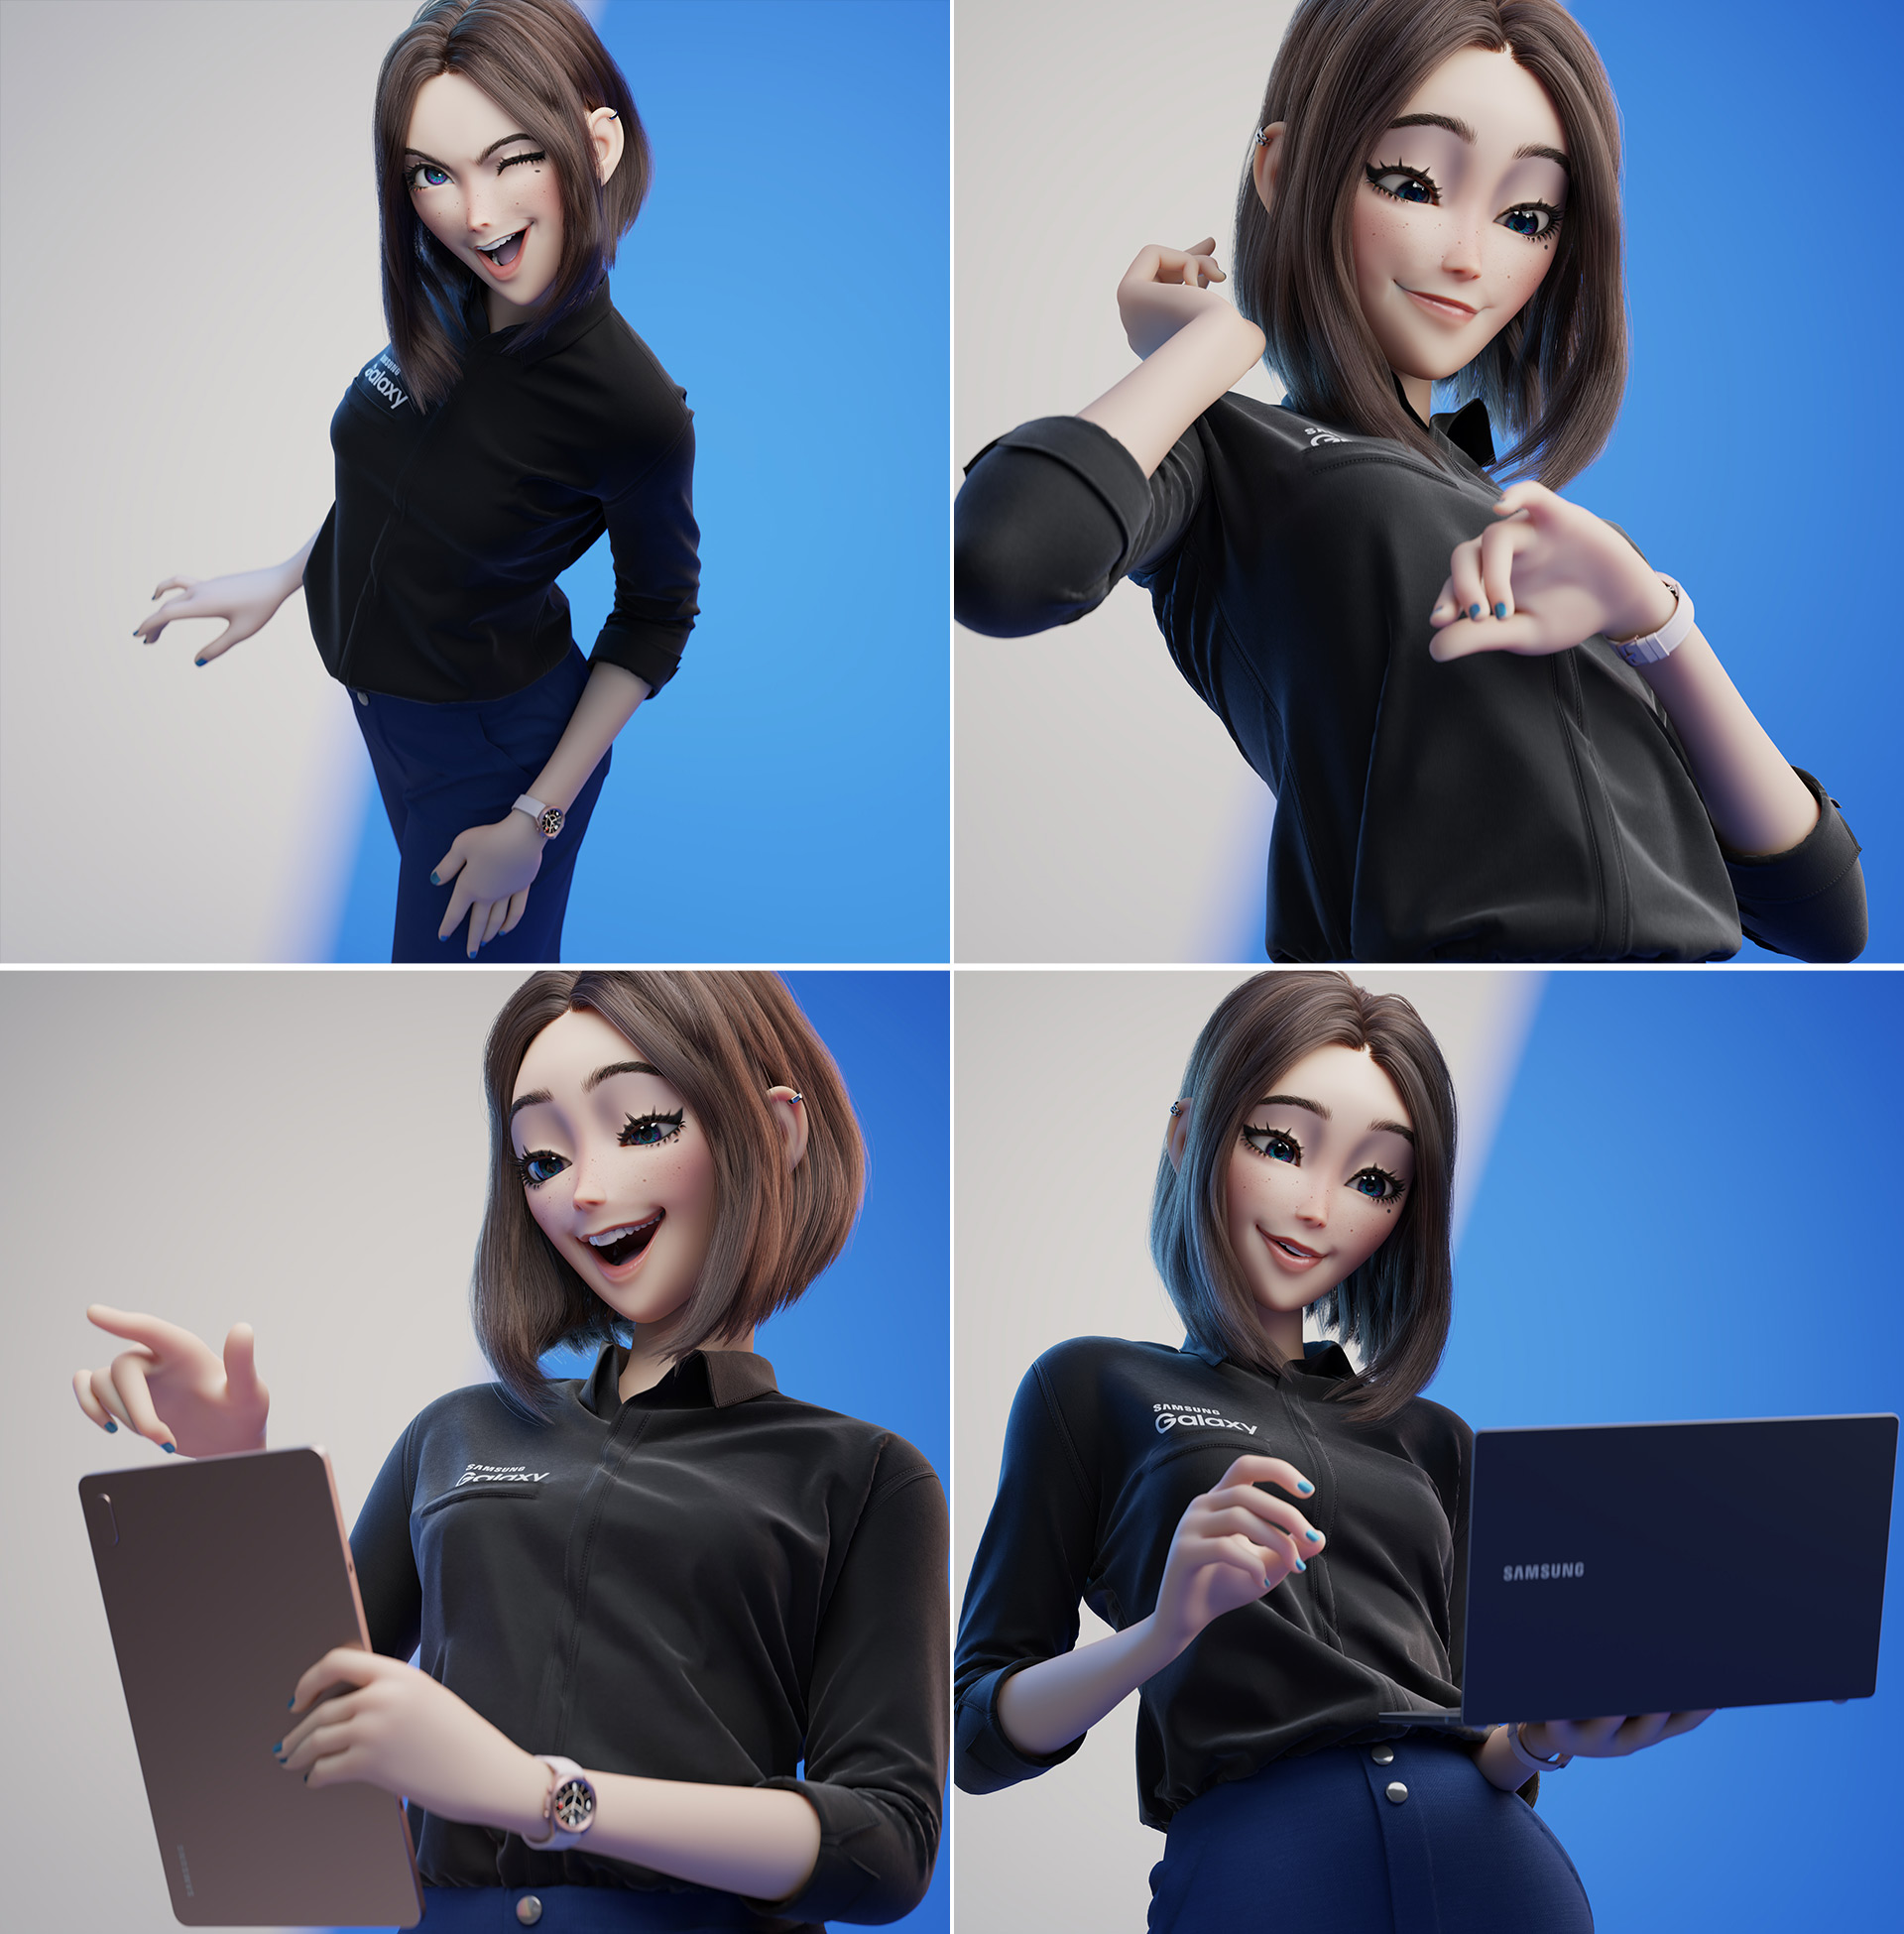 Samsung S Unreleased Virtual Assistant Sam Takes Over The Internet As Twitter Makes Fanart Of Her Soyacincau Com